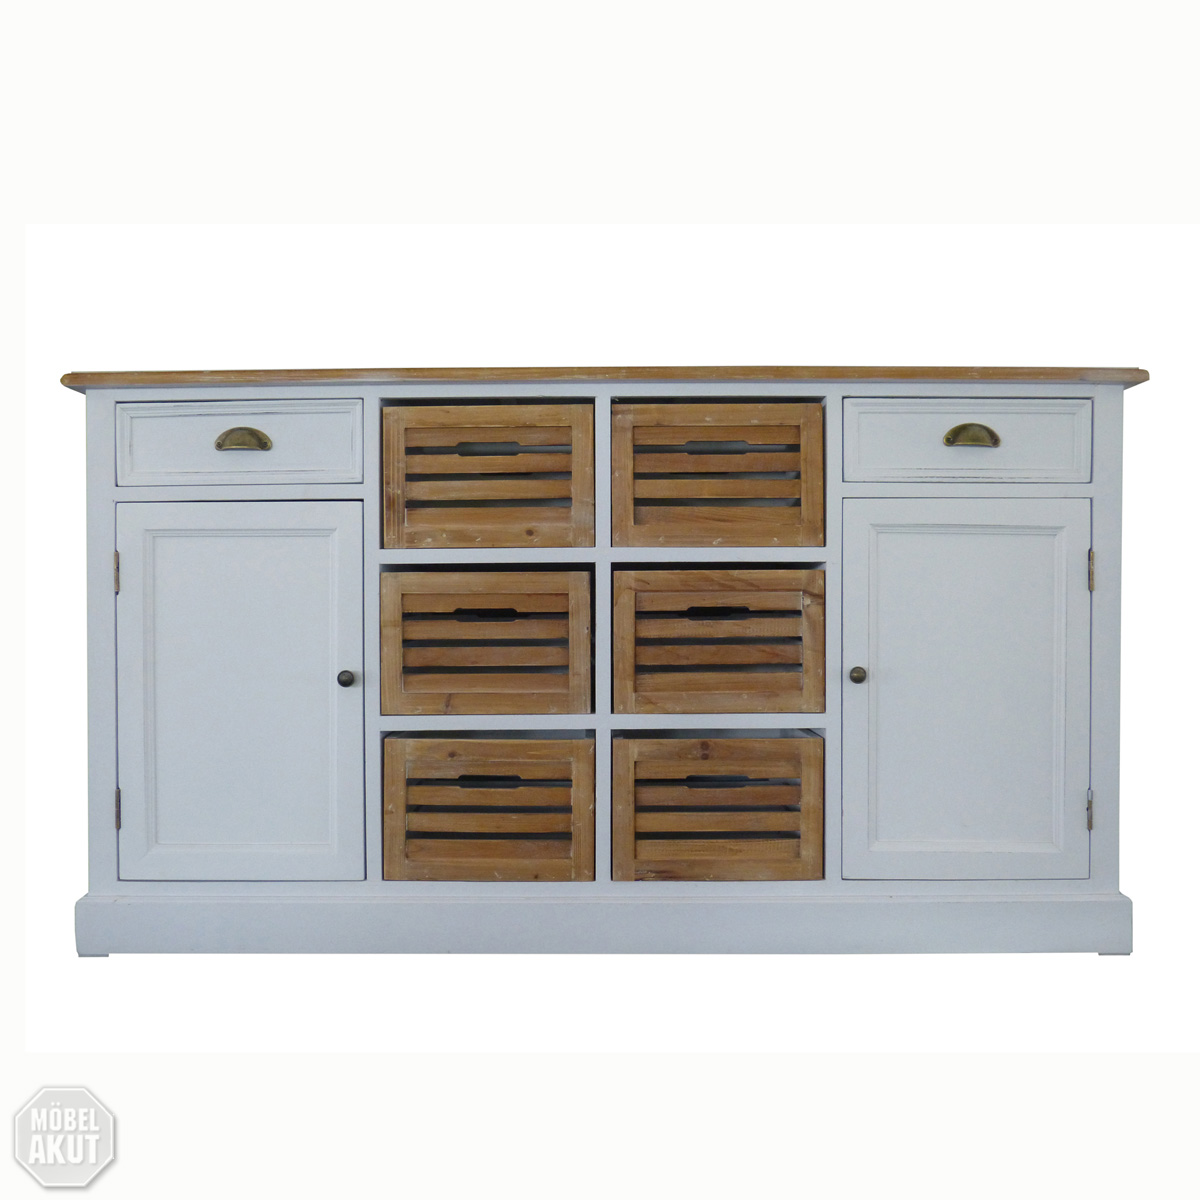 Sideboard 5 paris kommode in paulownia holz weiss vintage - Landhaus kommode ...